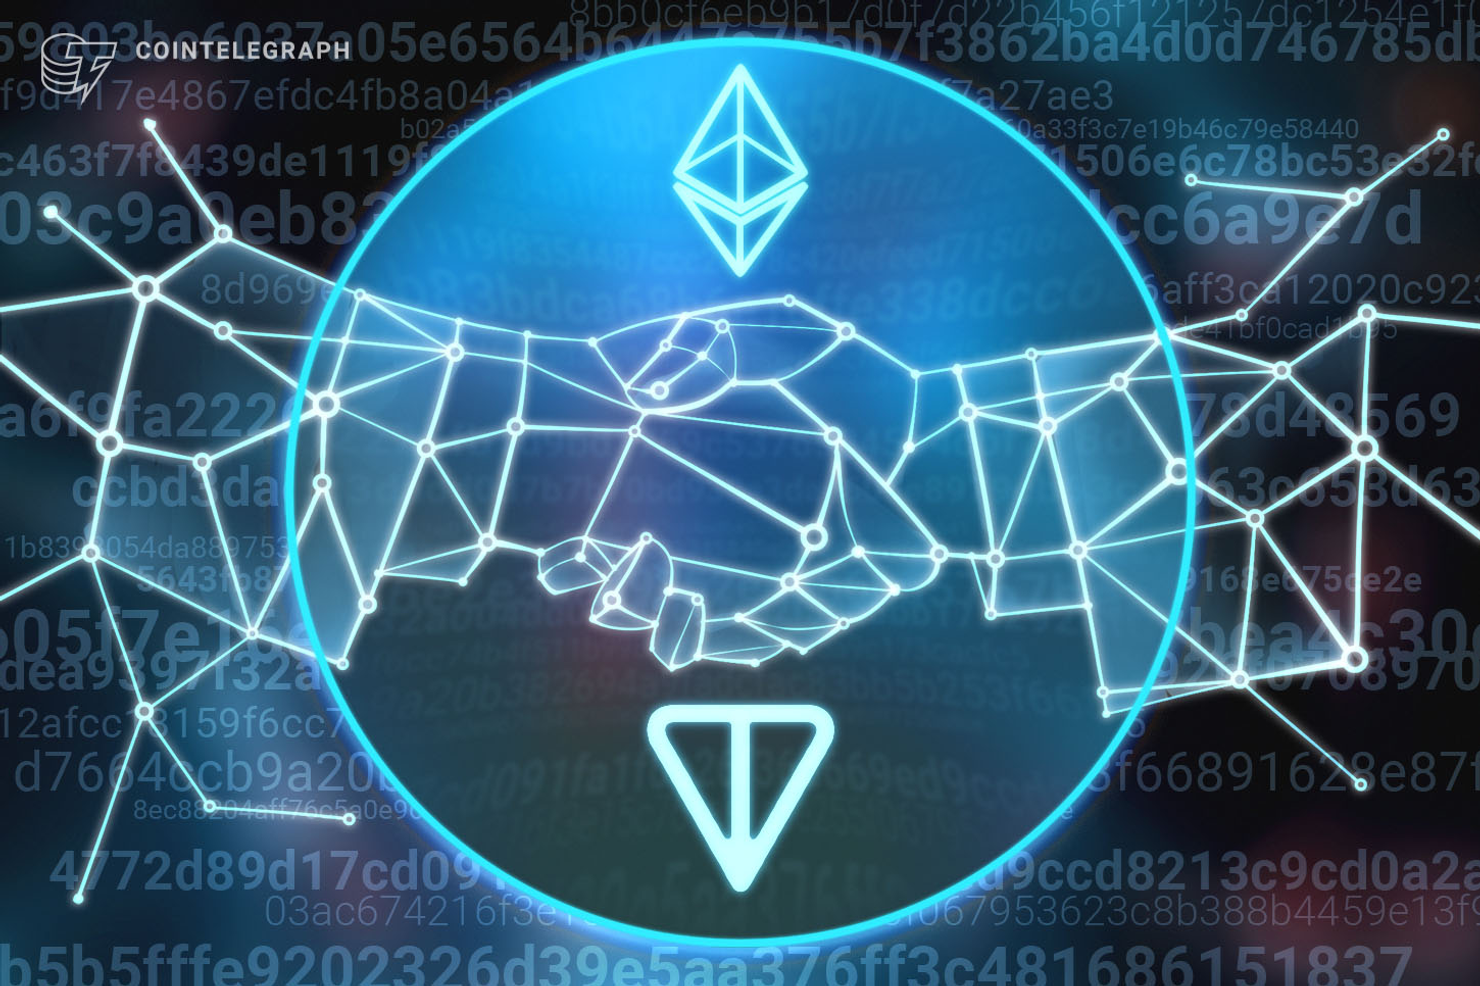 Report: Telegrams TON Blockchain to Be Compatible with Ethereum DApps